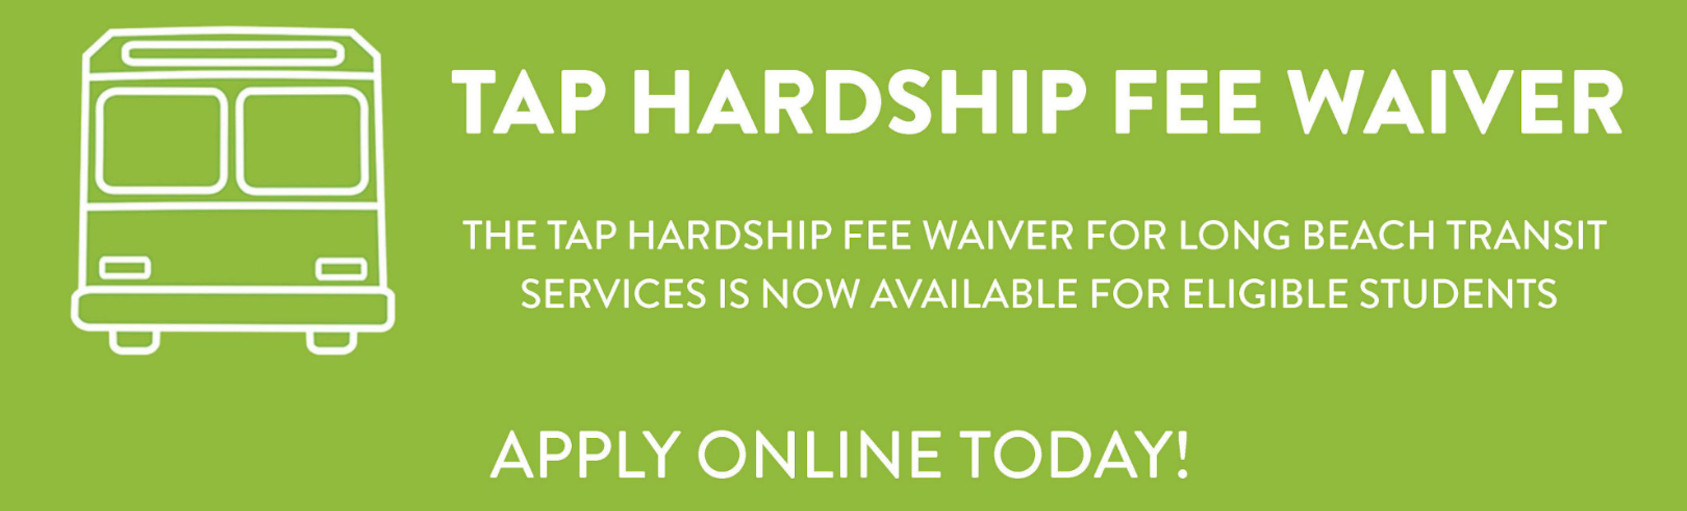 TAP Hardship Fee Waiver banner